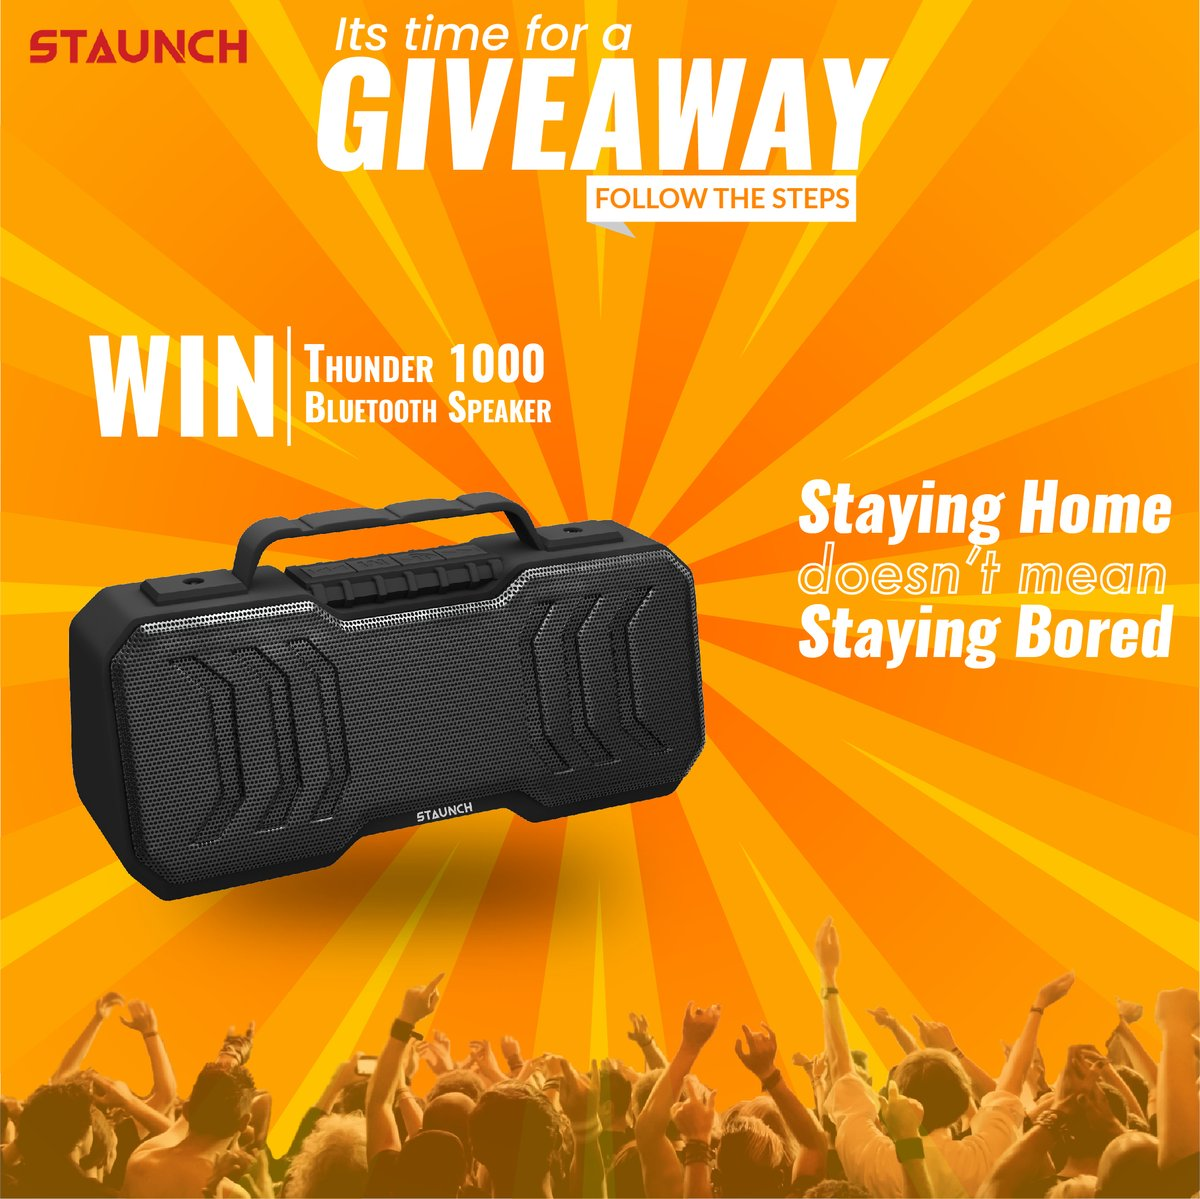 @staunch_india Done  https://t.co/wZLavfwlkX . . #contestalert #giveaway #giveawayalert #giveaways #contest #contestindia https://t.co/yInmEE01ie